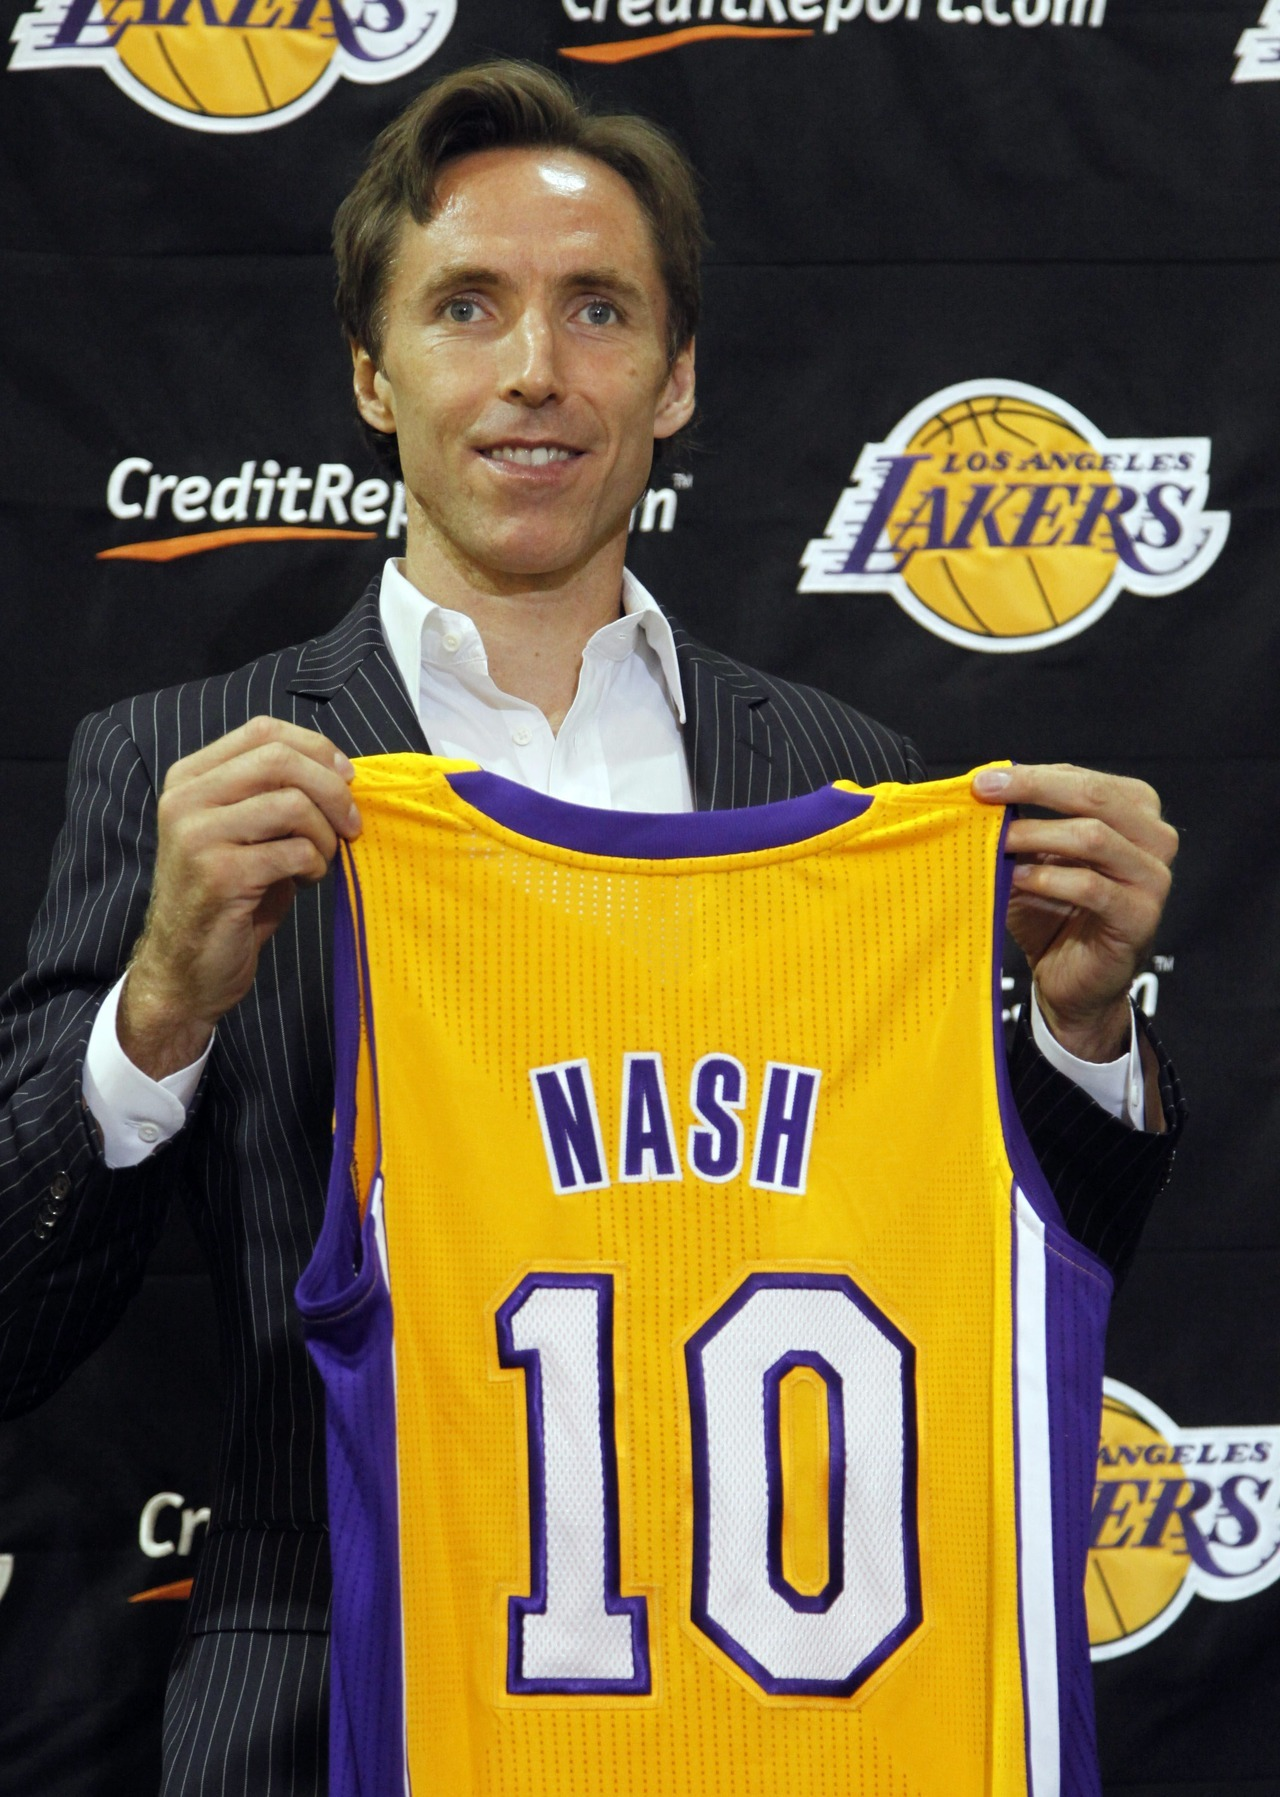 Now you know it's real: Last week, Steve Nash was traded to the L.A. Lakers. This week, he tried on his new jersey at a news conference in California. It's all happening so fast.